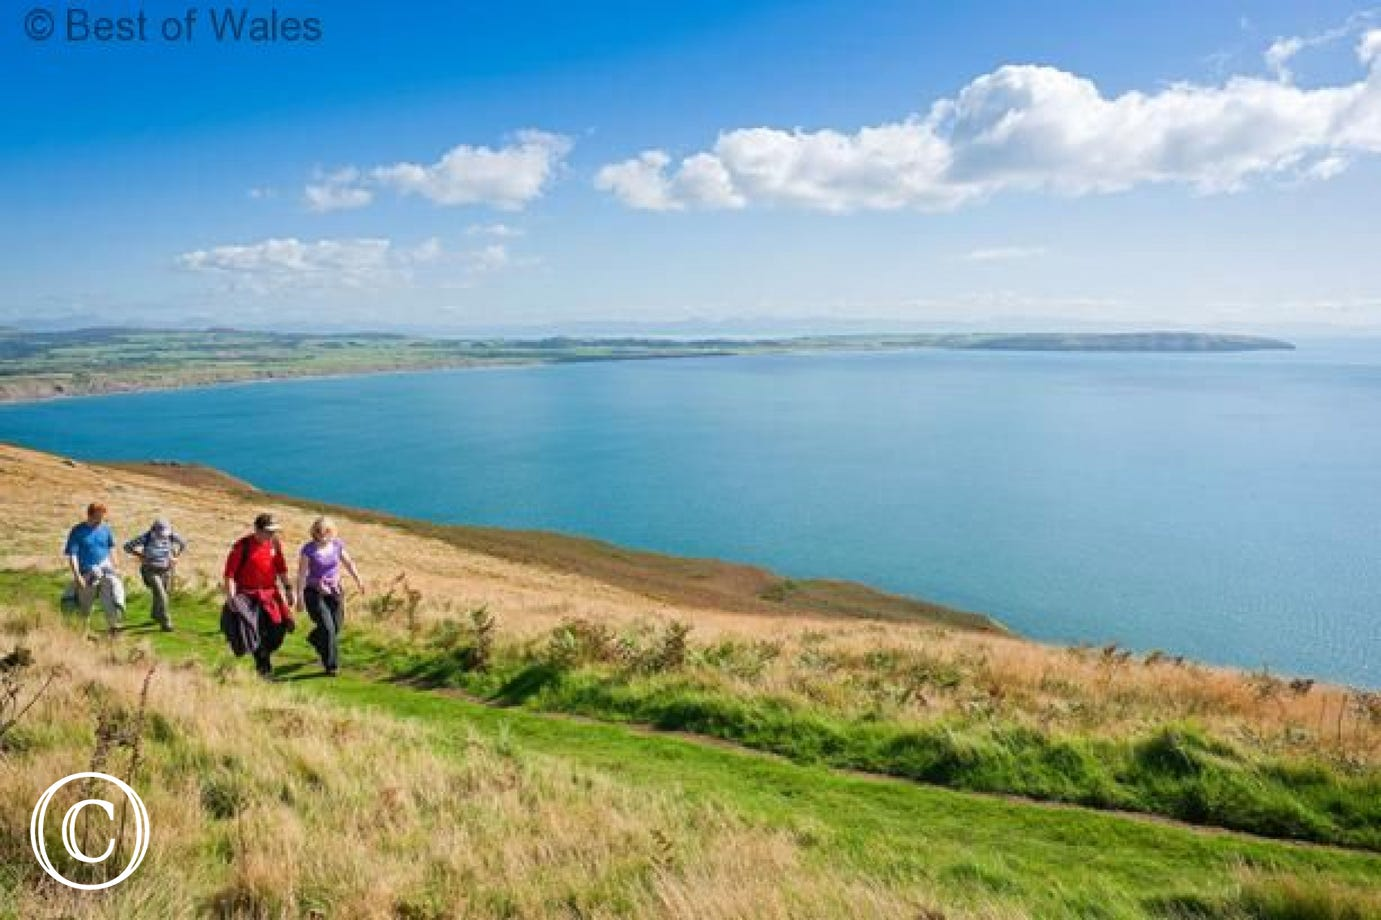 Llyn Coastal Path, 750 meters from your Llanbedrog accommodation